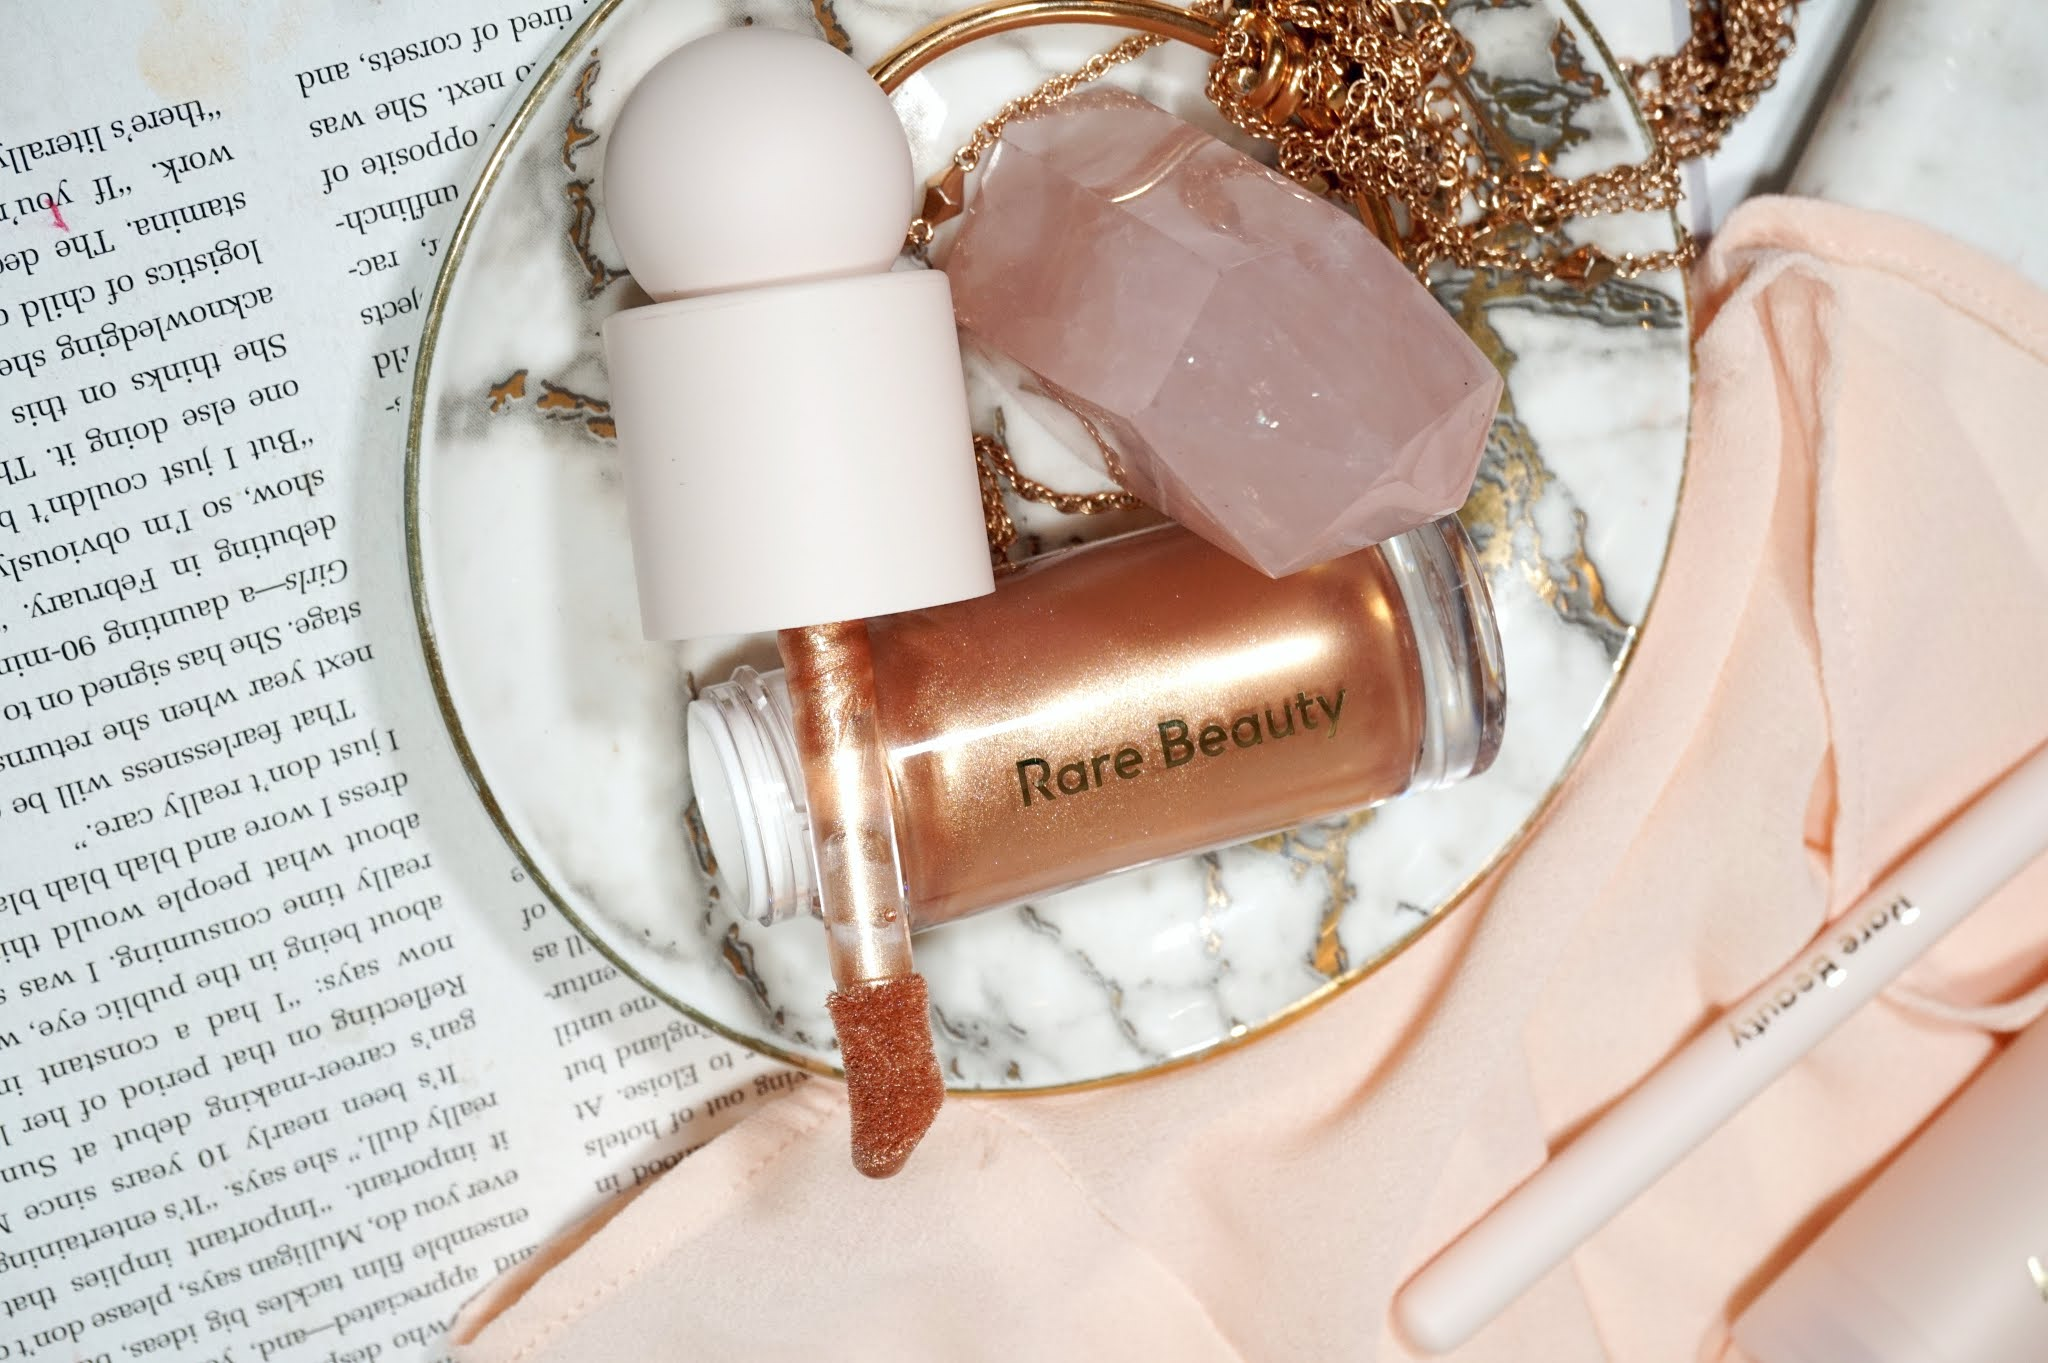 Rare Beauty By Selena Gomez Review and Swatches